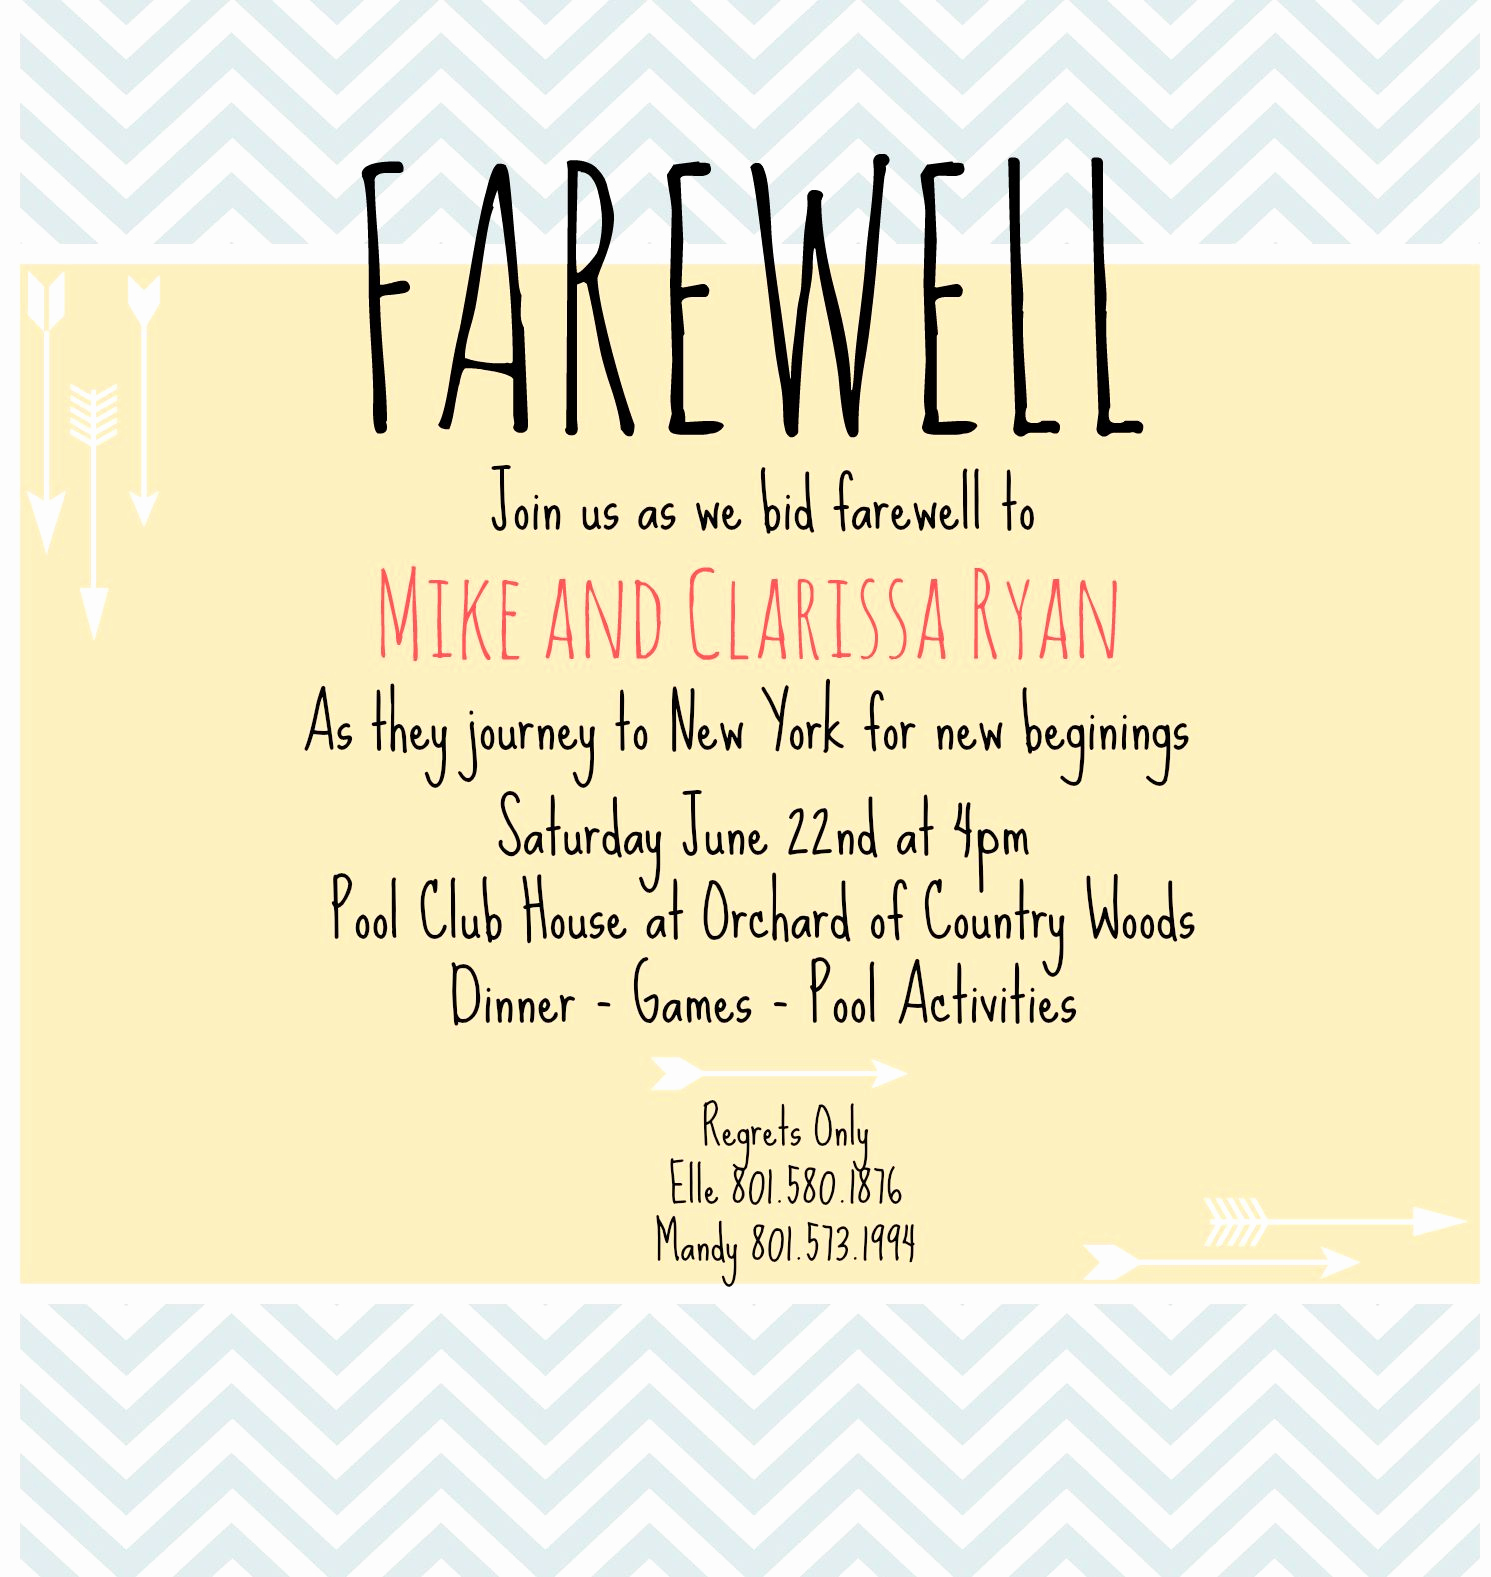 Farewell Party Invitation Wording New Farewell Invite Picmonkey Creations